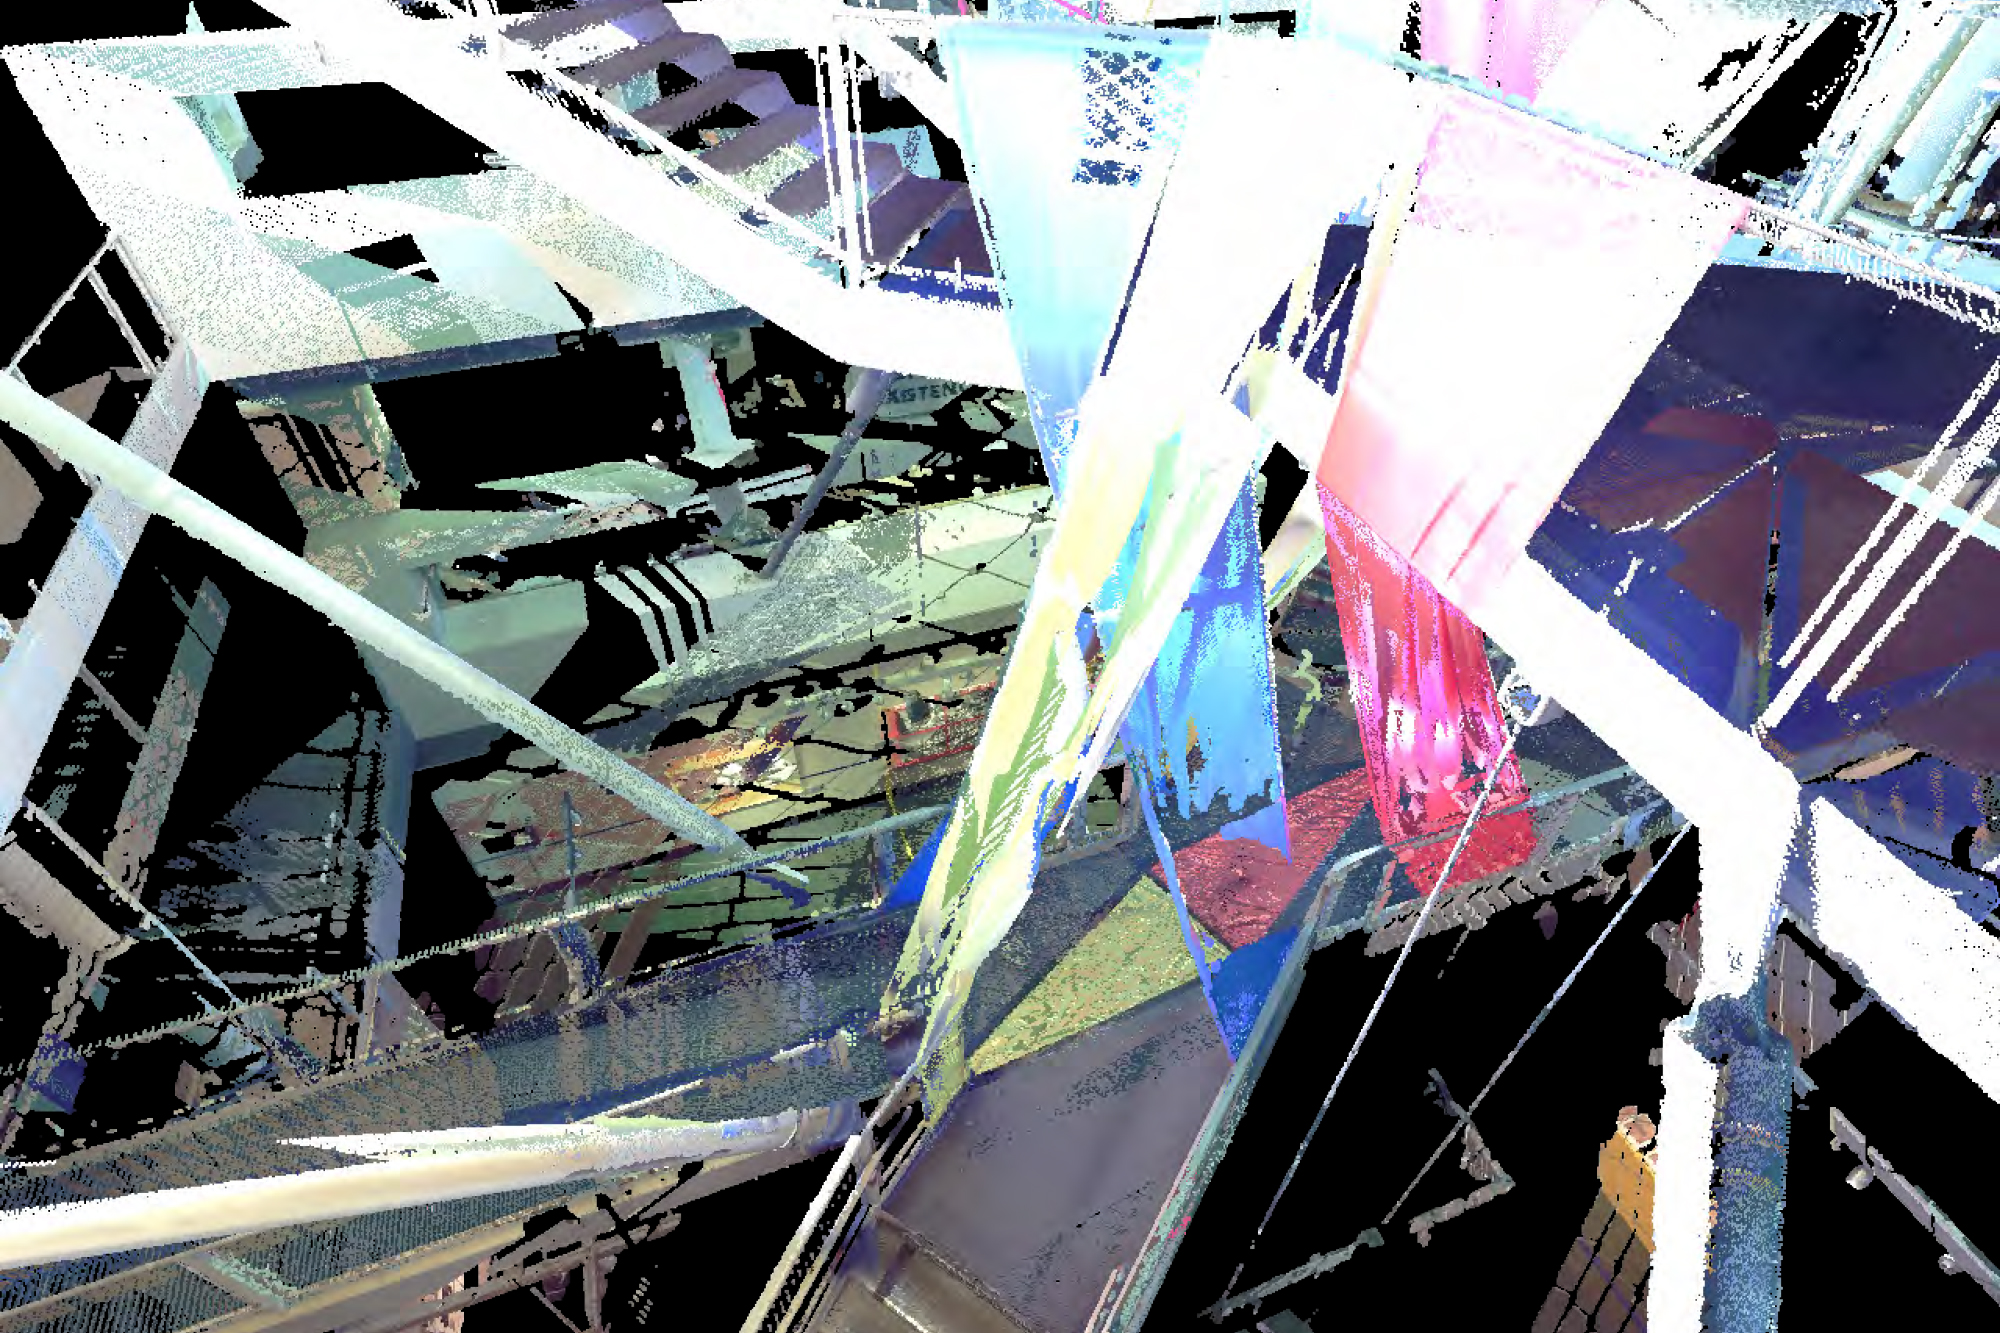 CIty-College-New-York-CUNY-ValmiraGashi-3D-laser-scanning-point-cloud-new-york-2.jpg